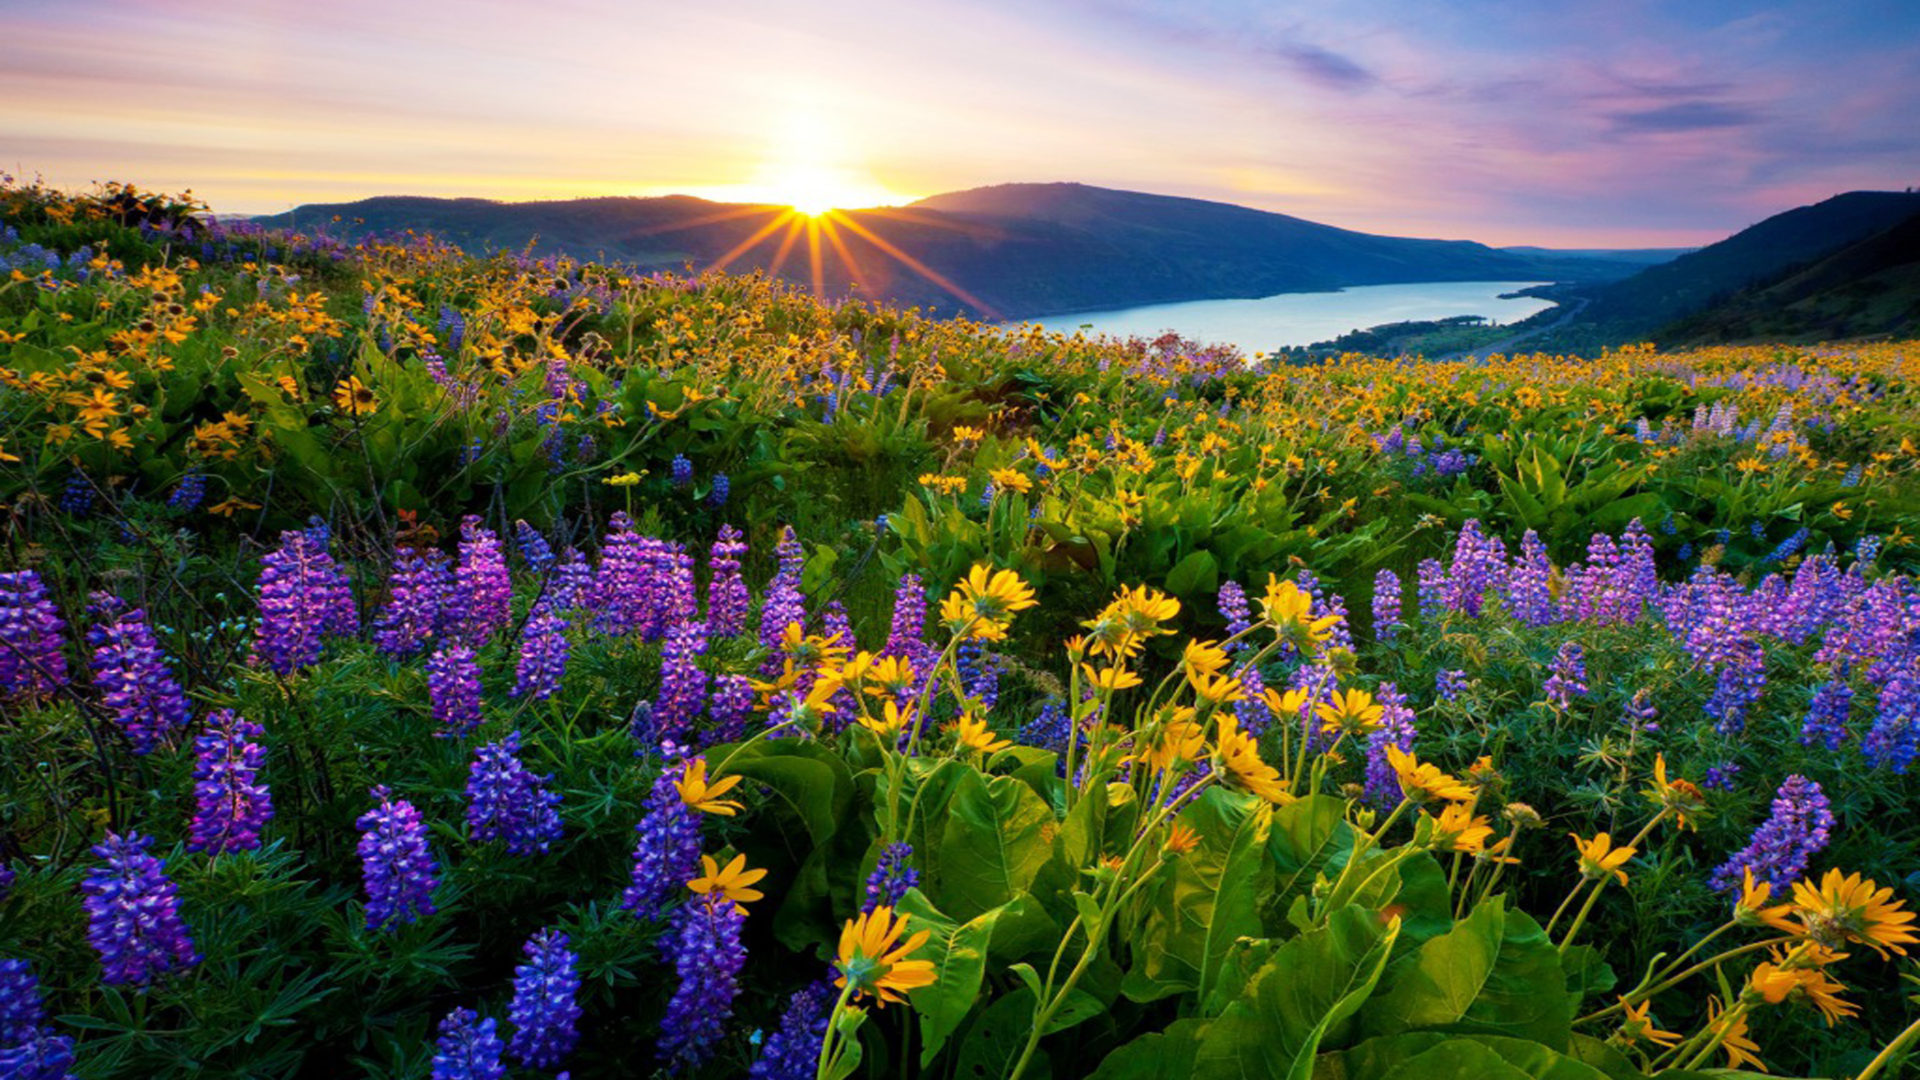 Late Fall Wallpaper Hd Sunrise Morning First Sun Rays Flowers Meadow With